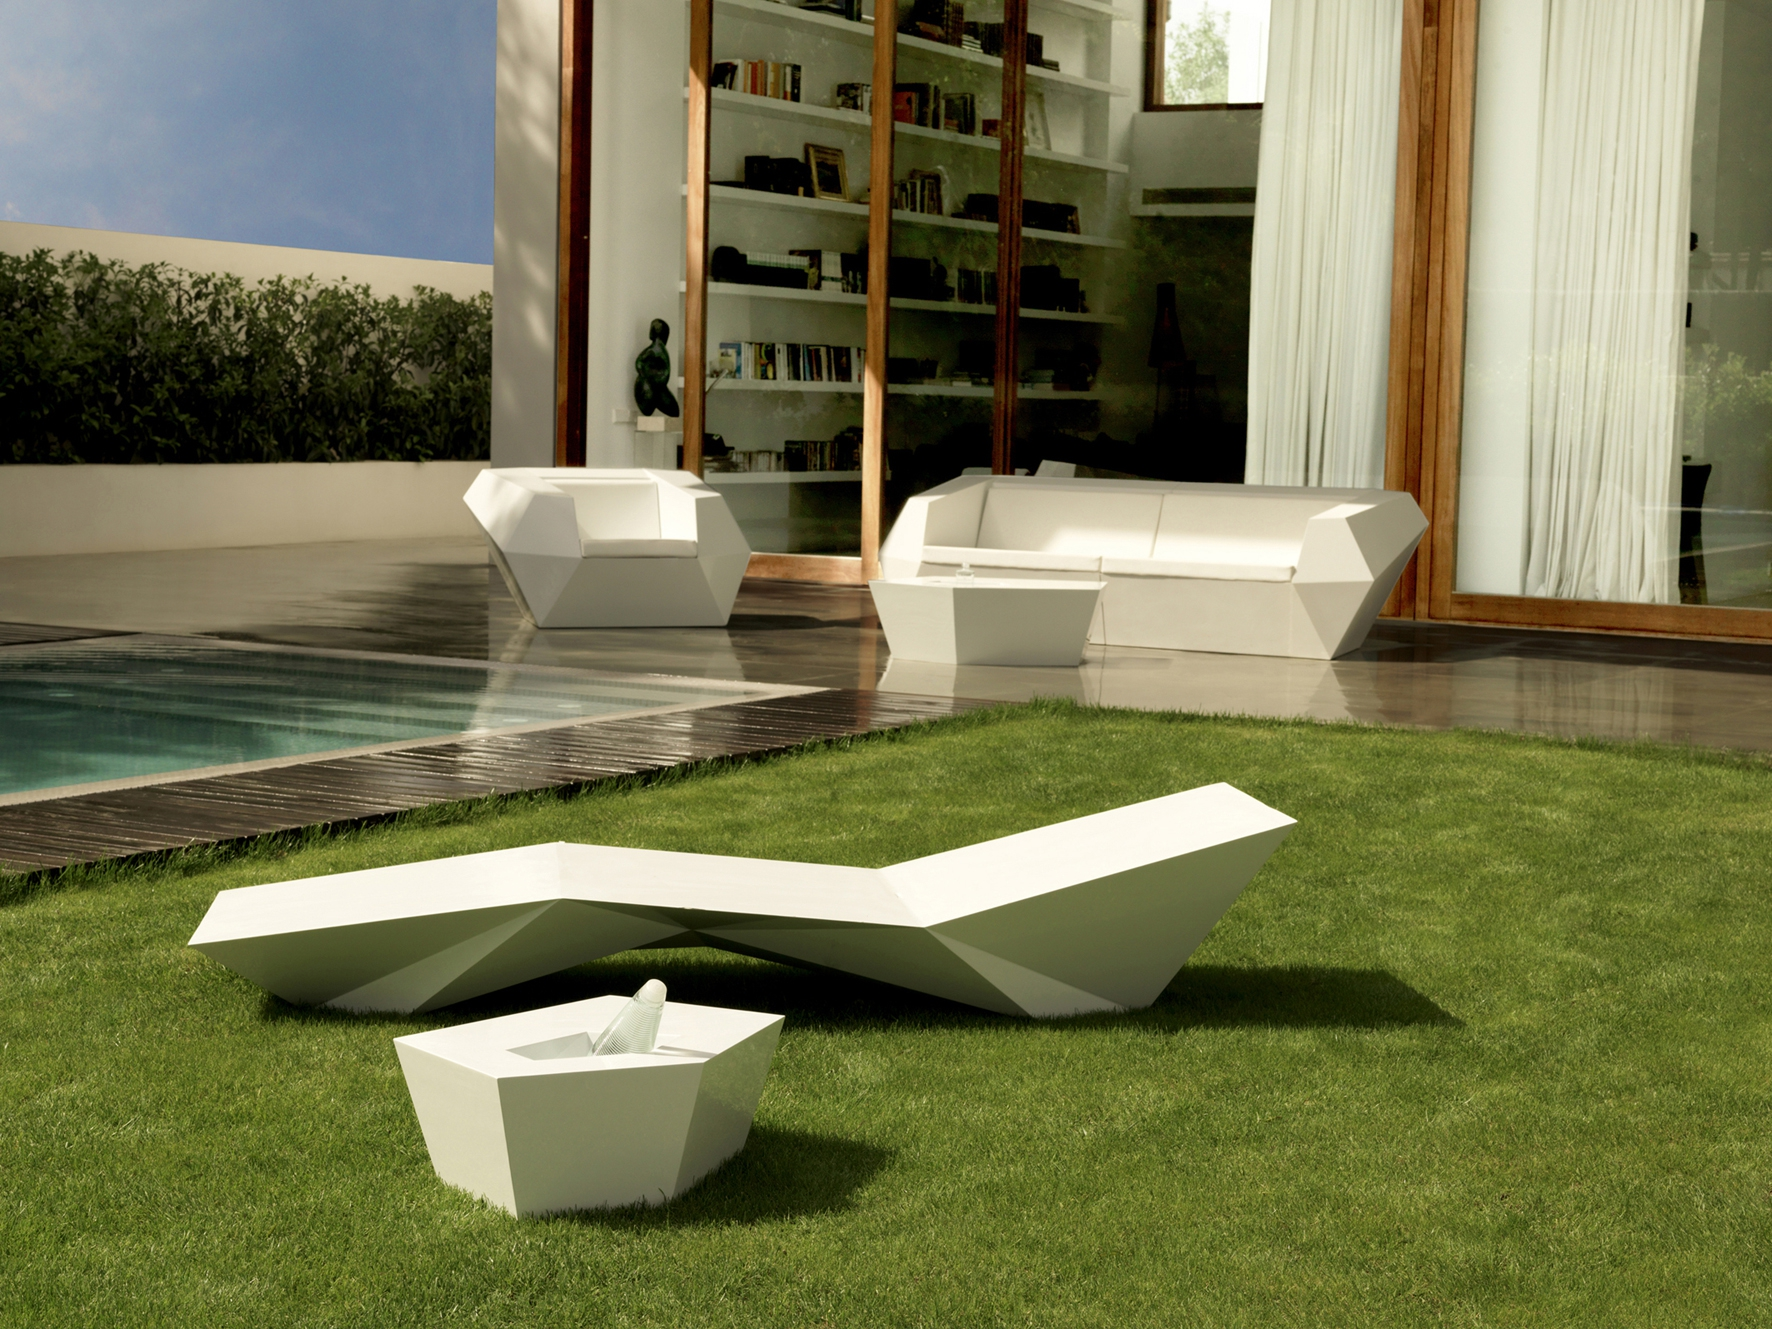 Faz Coffee Table Lacquered Outdoor Table with Planter by Vondom